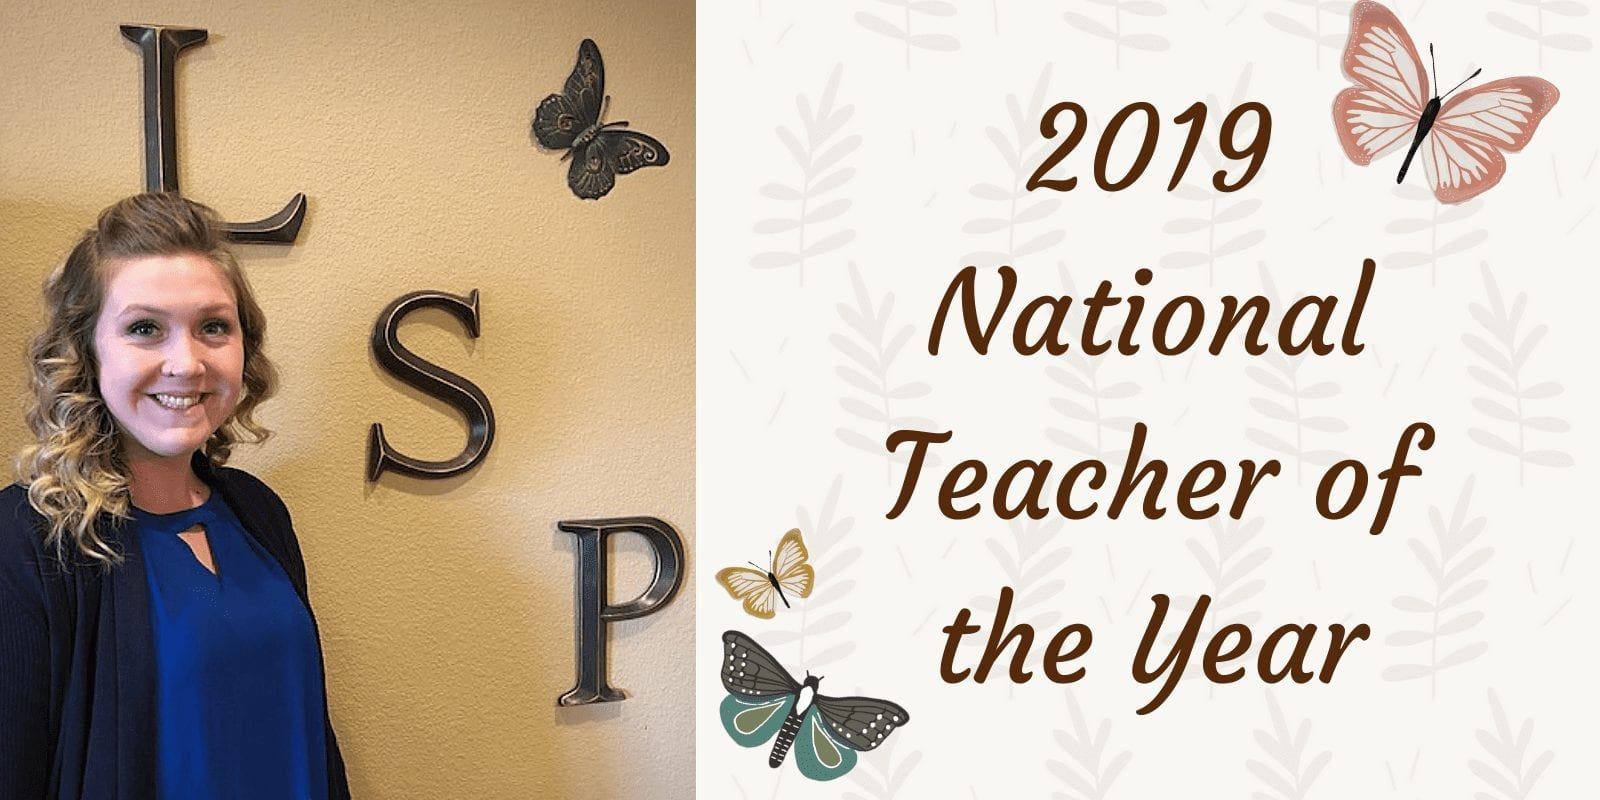 Little Sunshine's Playhouse 2019 National Teacher of the Year